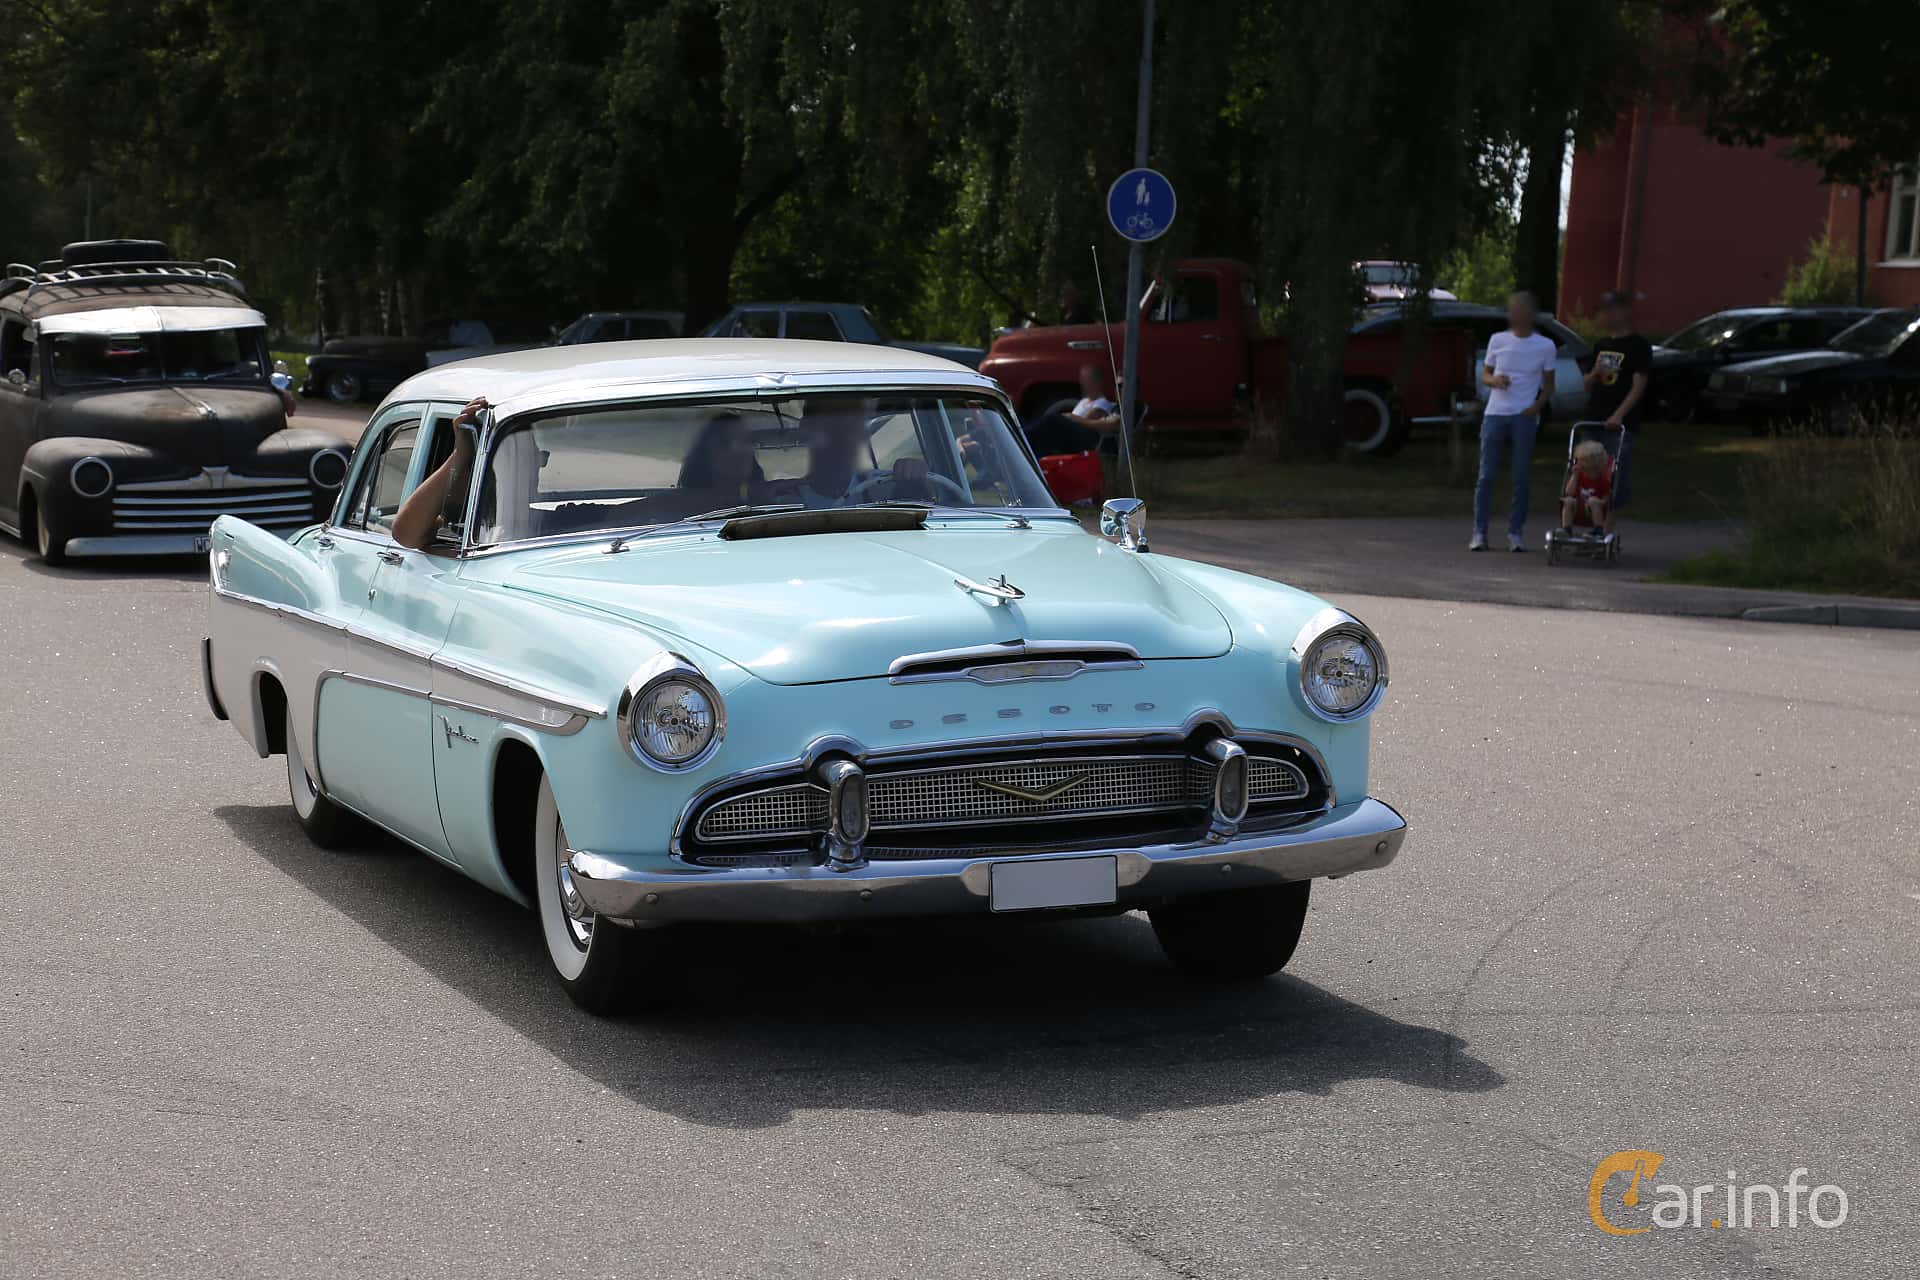 DeSoto Firedome Sedan 5.4 V8 Automatic, 233hp, 1956 at A-bombers - Old Style Weekend Backamo 2019